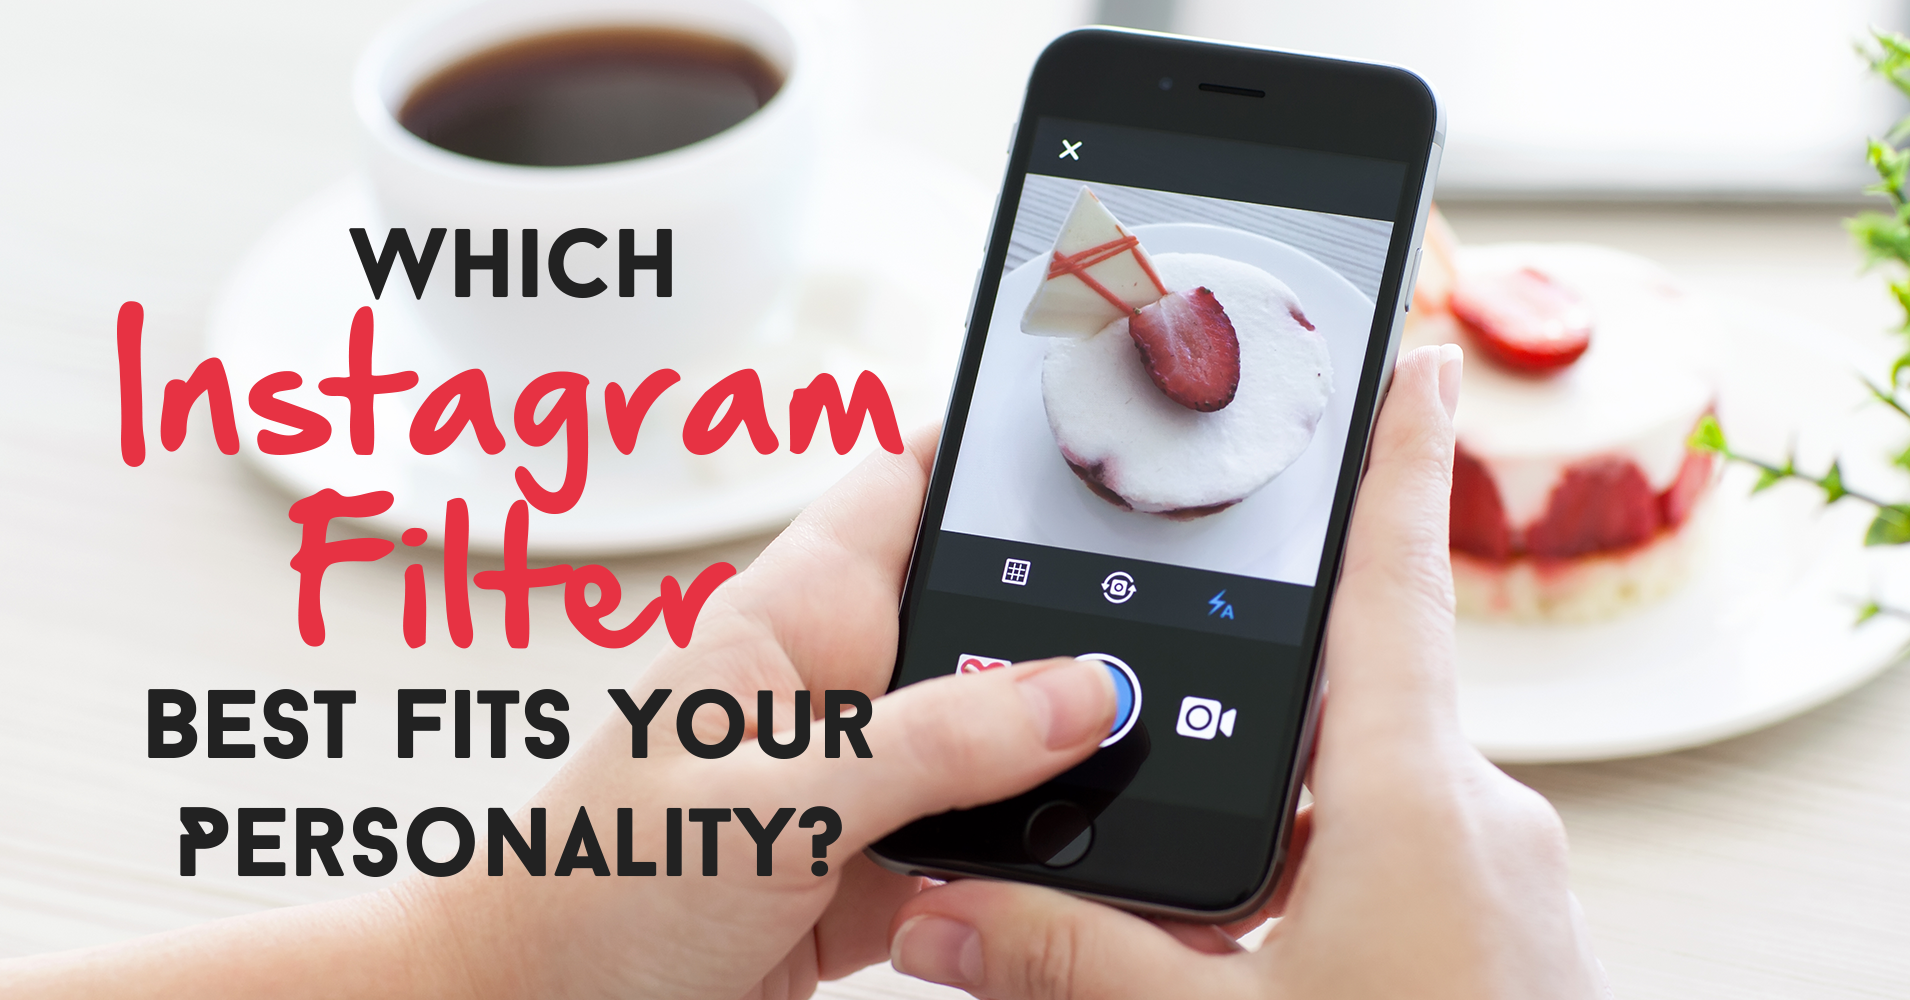 imageForSharing which instagram filter best fits your personality? quiz quizony com